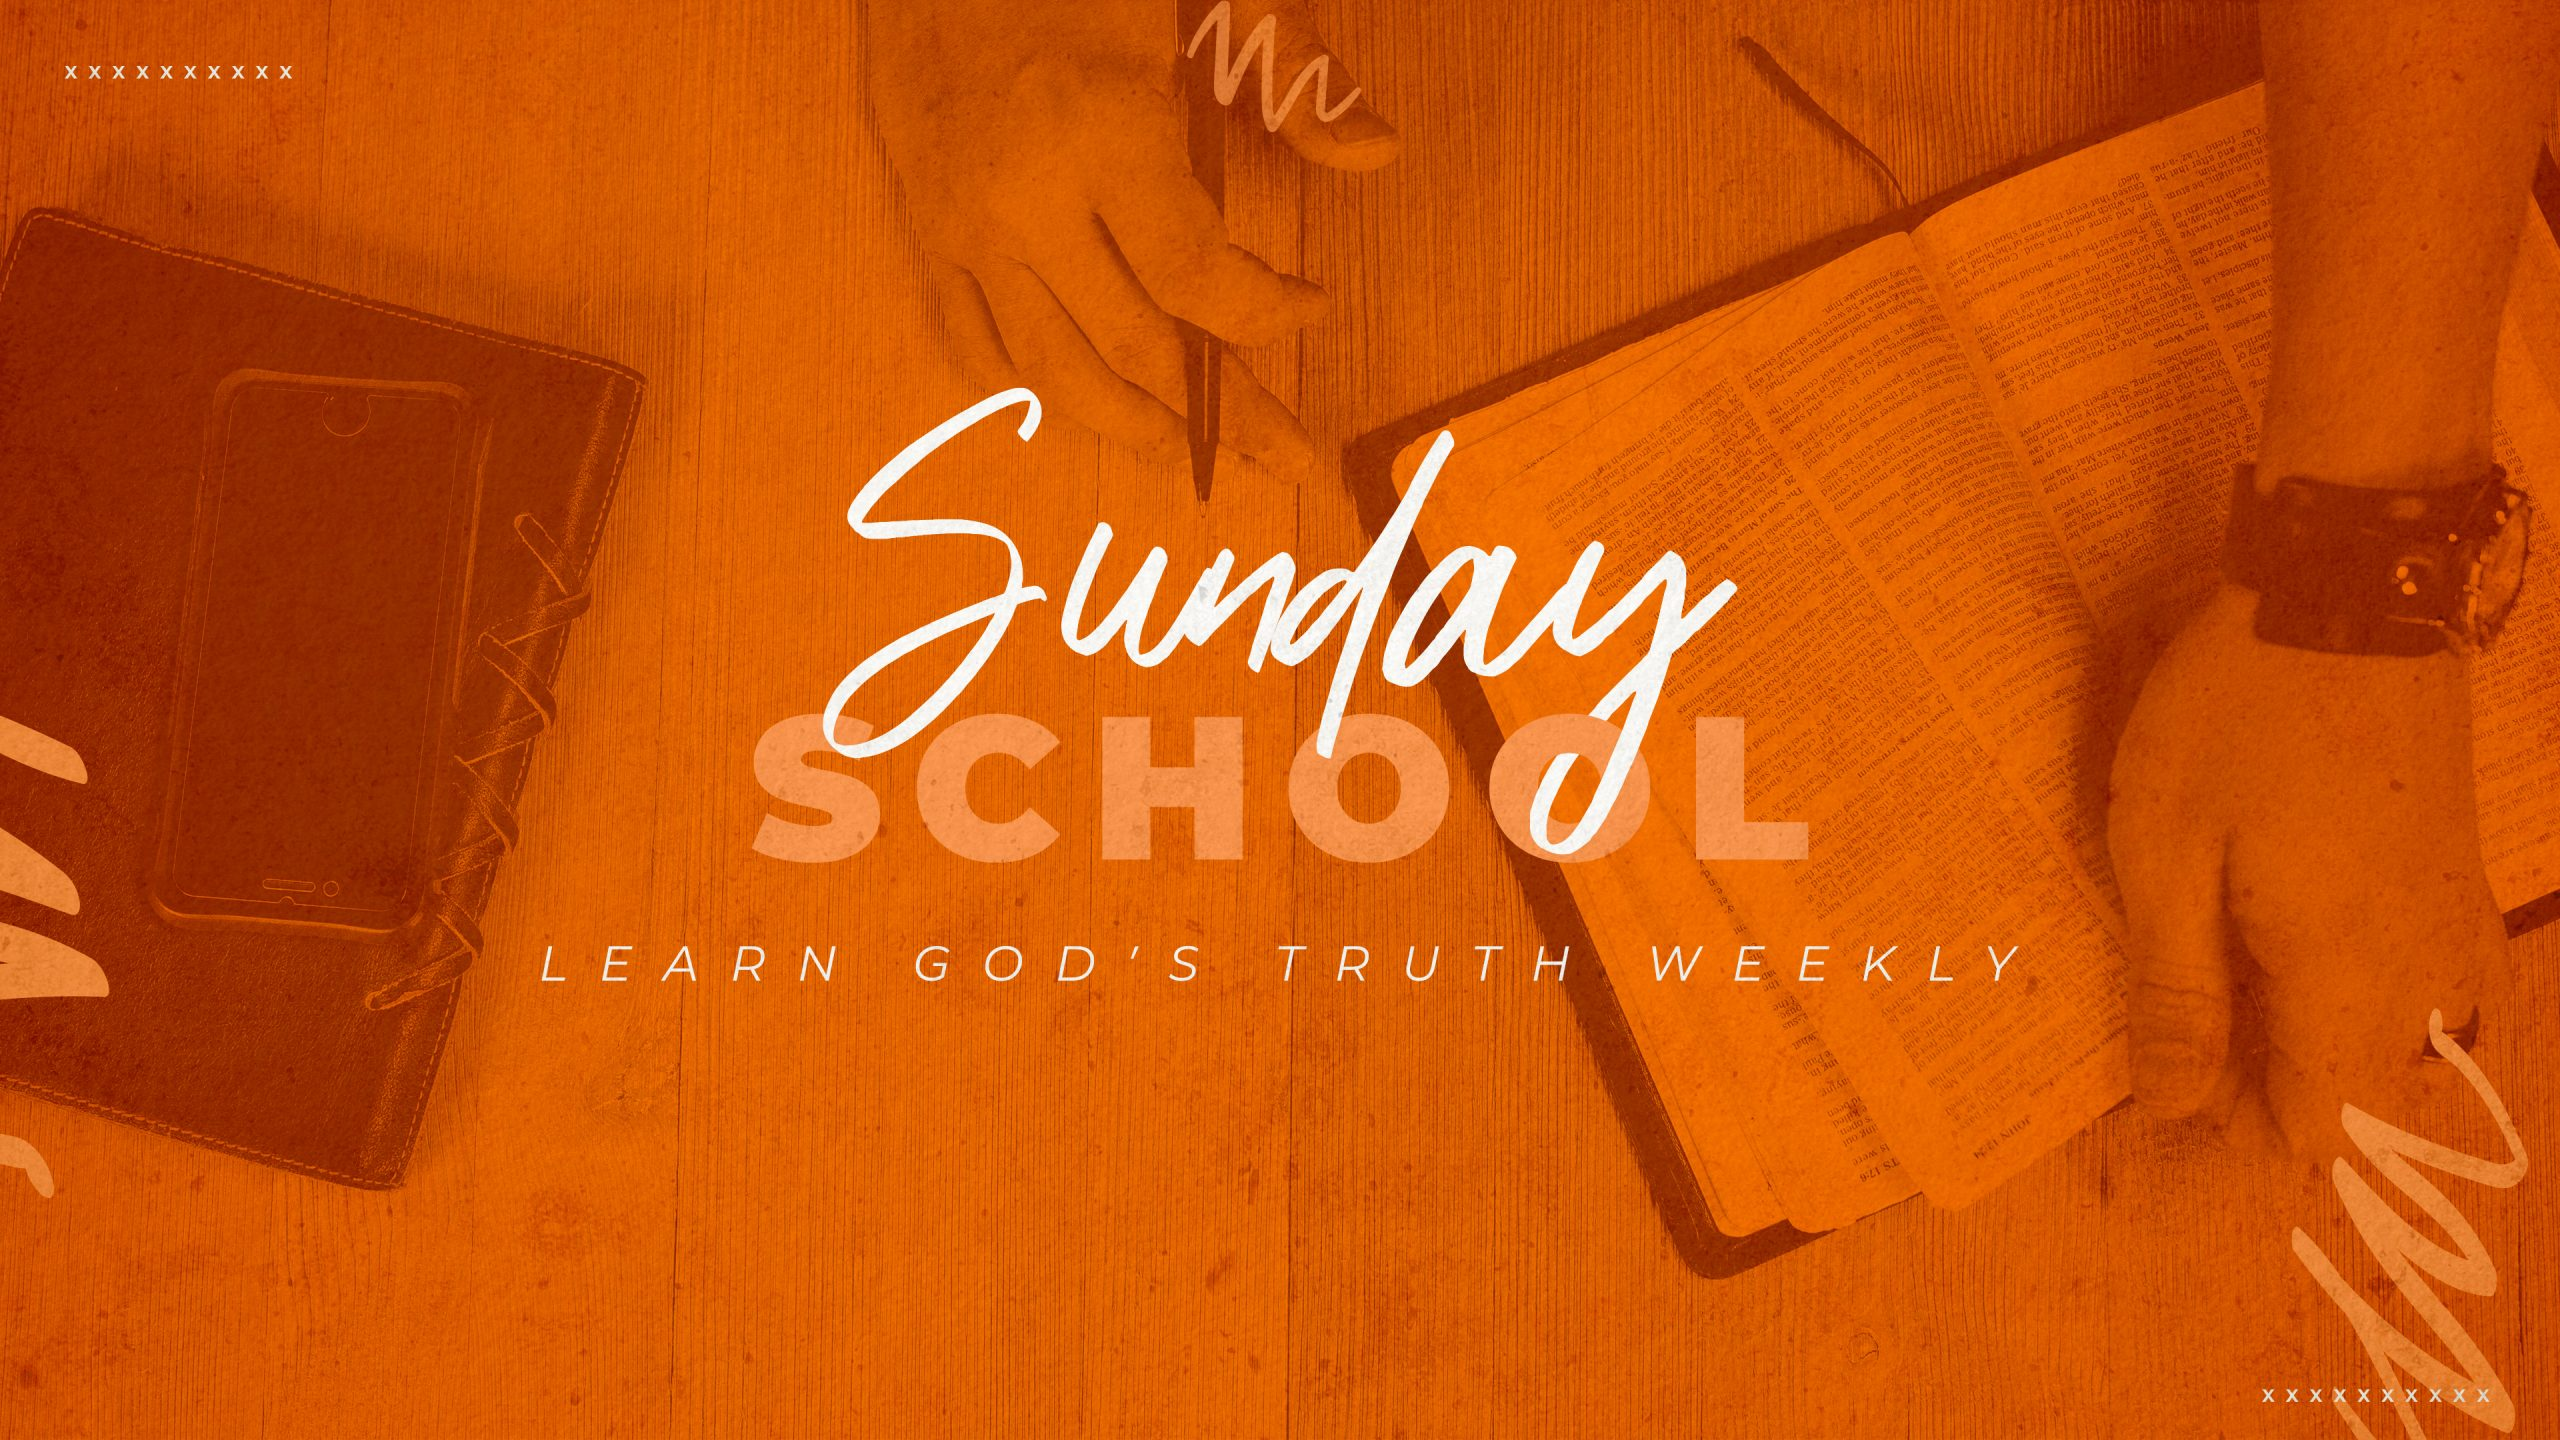 Sunday School - Learn God's Truth Weekly